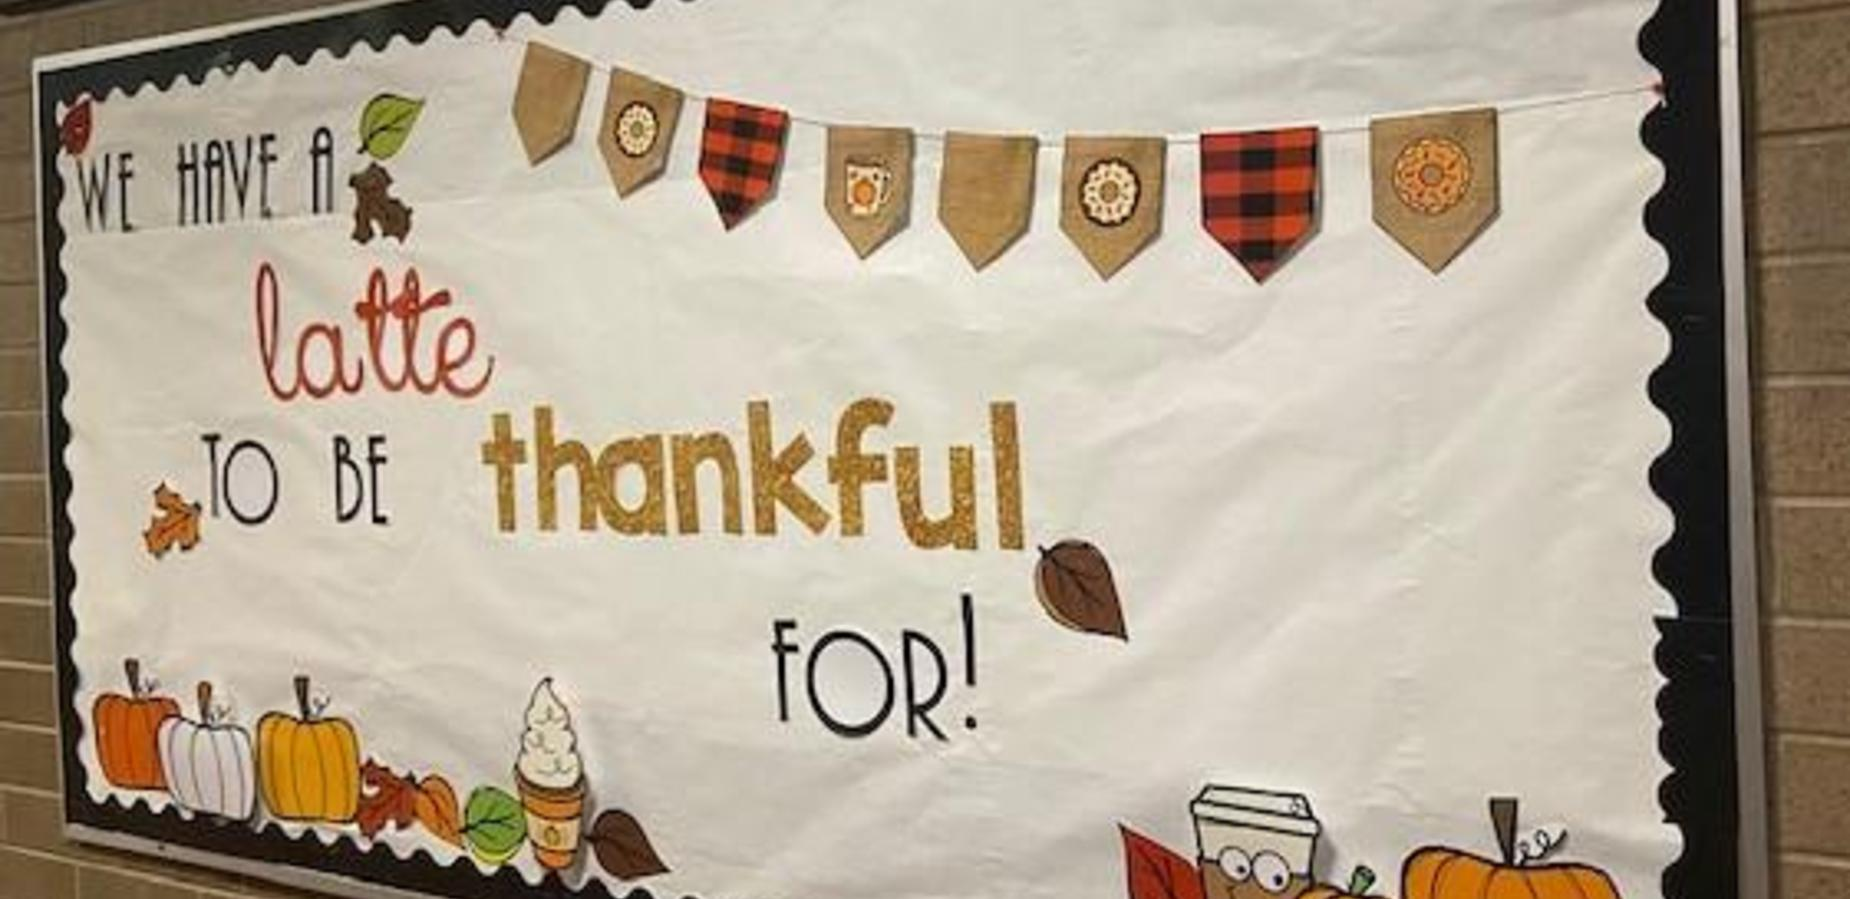 We have A Latte to be Thankful for!